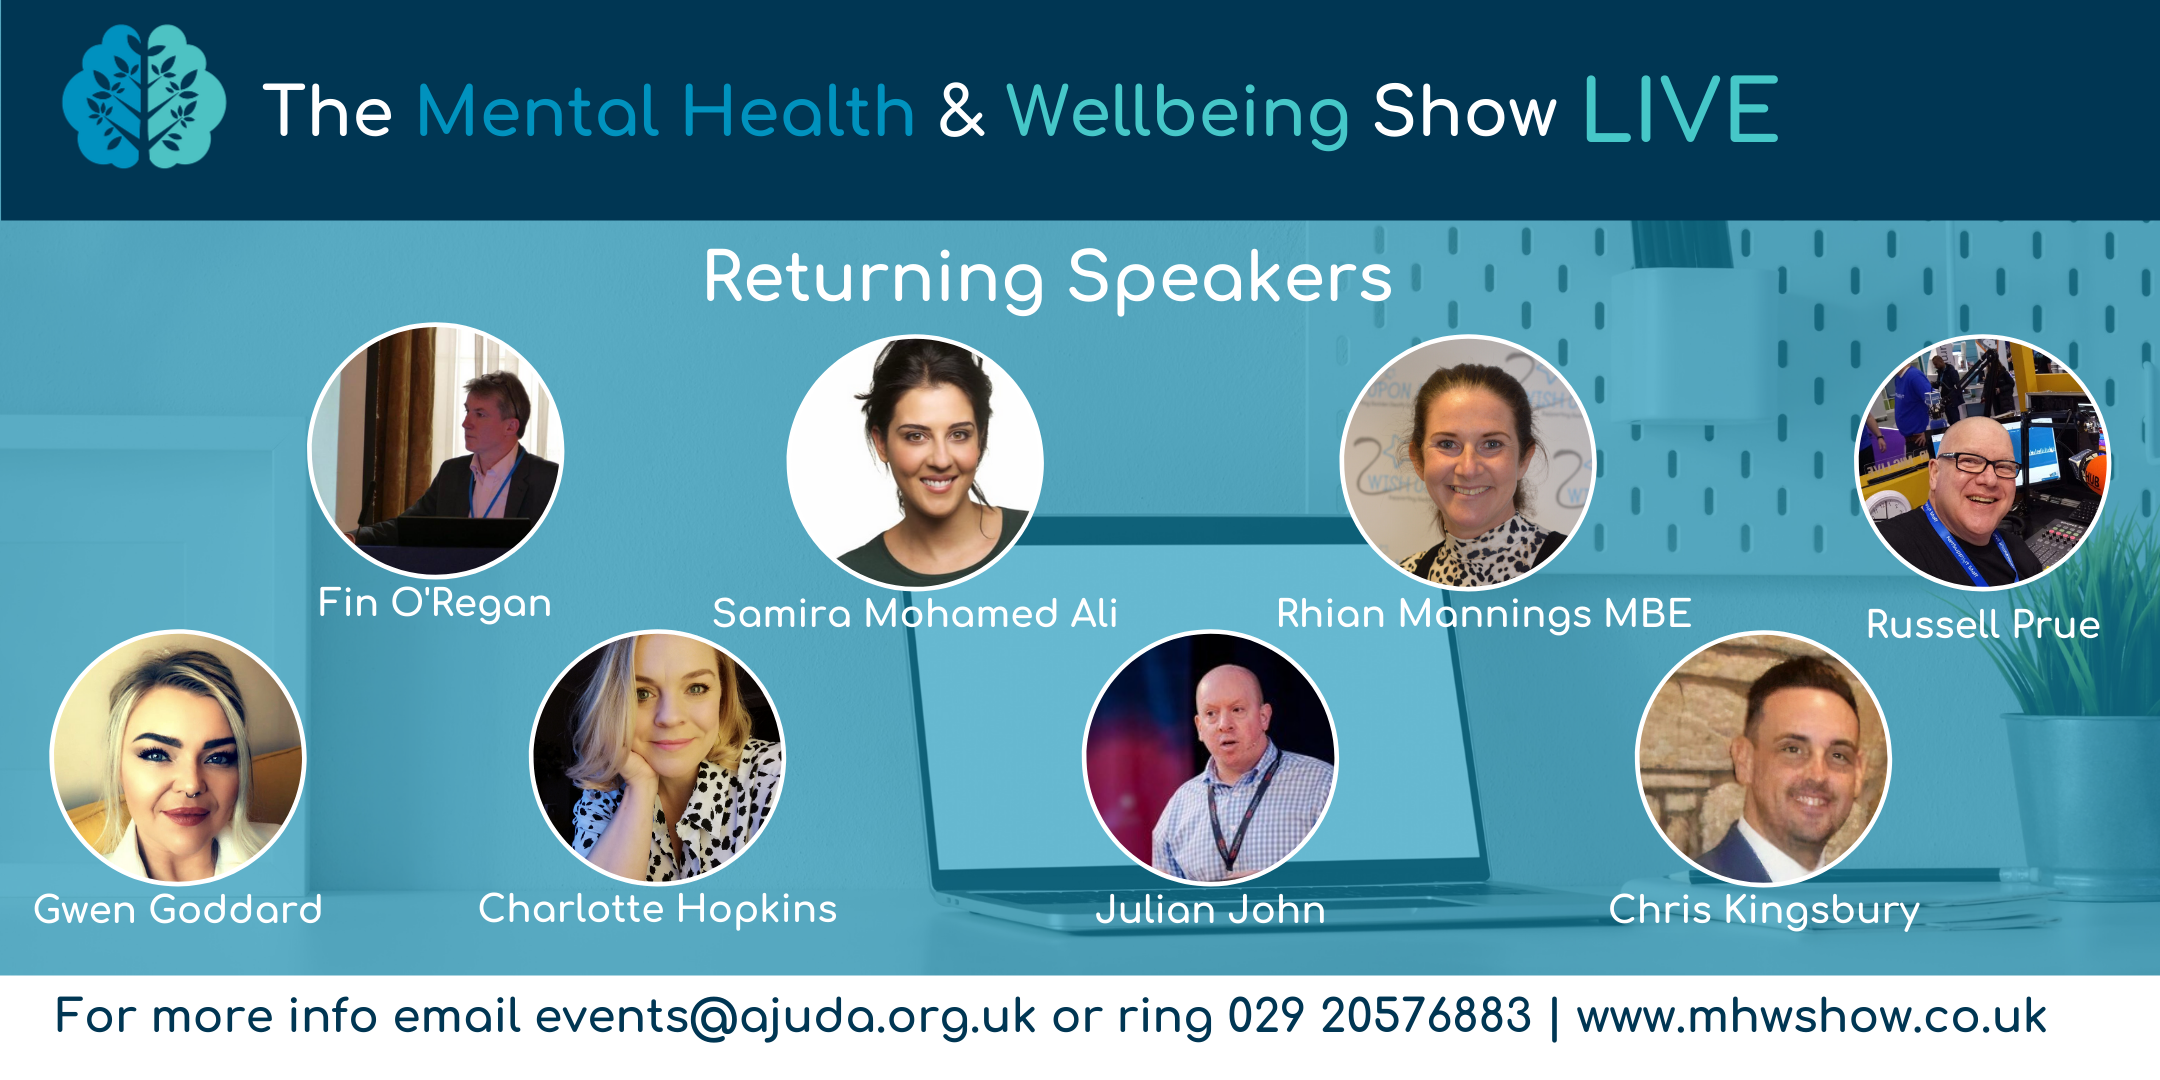 See lots of our online speakers live in Cardiff!